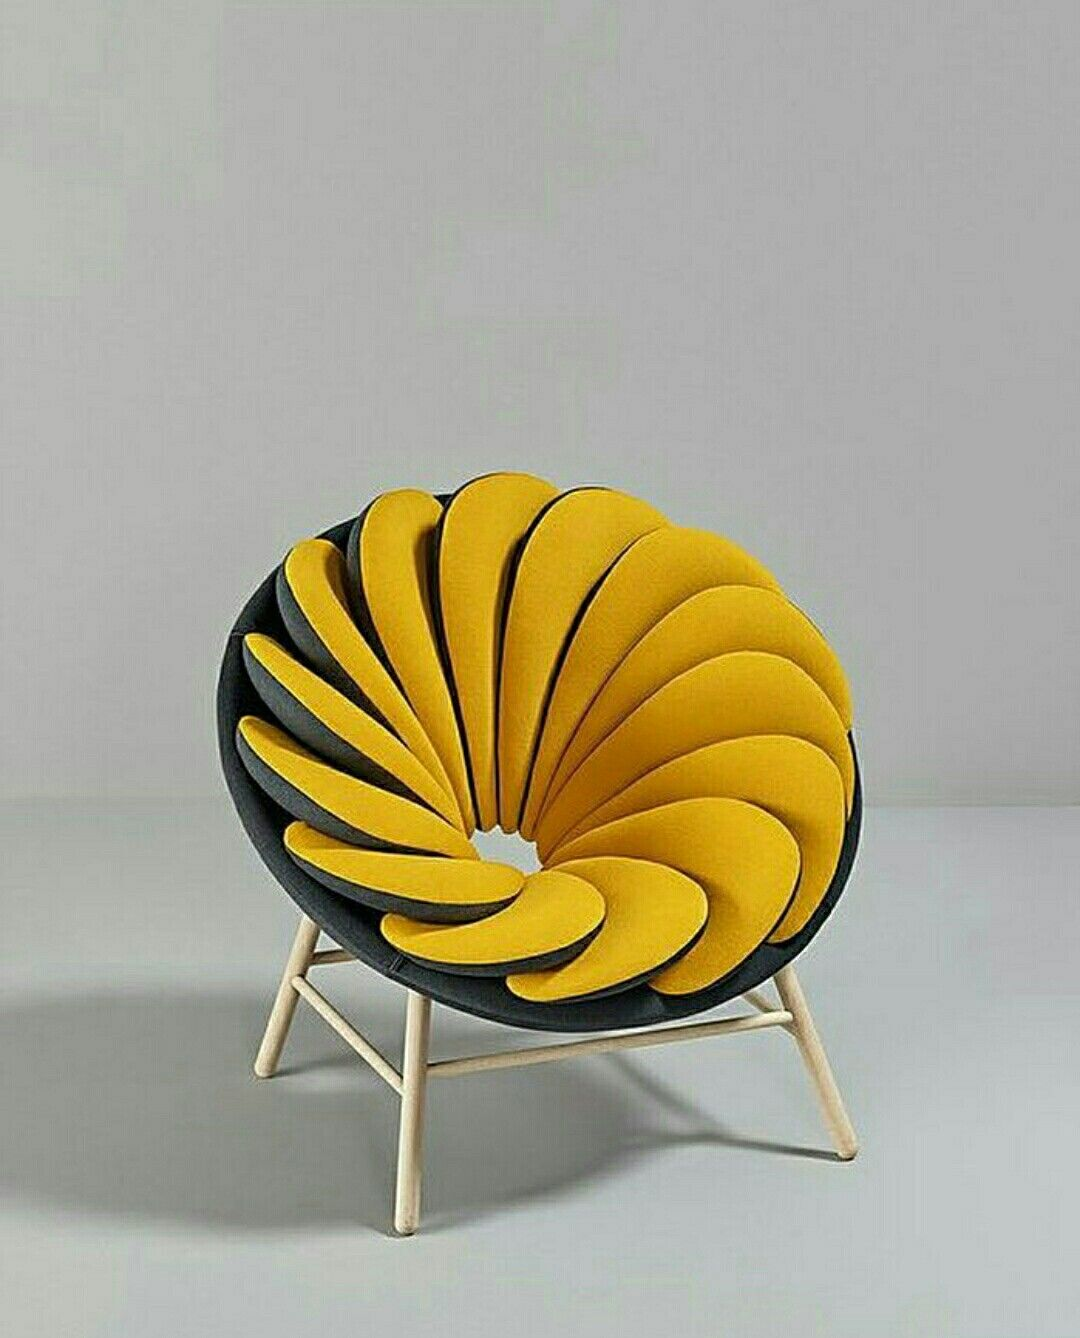 ดอกไม Art Nouveau Product Ideas Furniture Design Chair Design